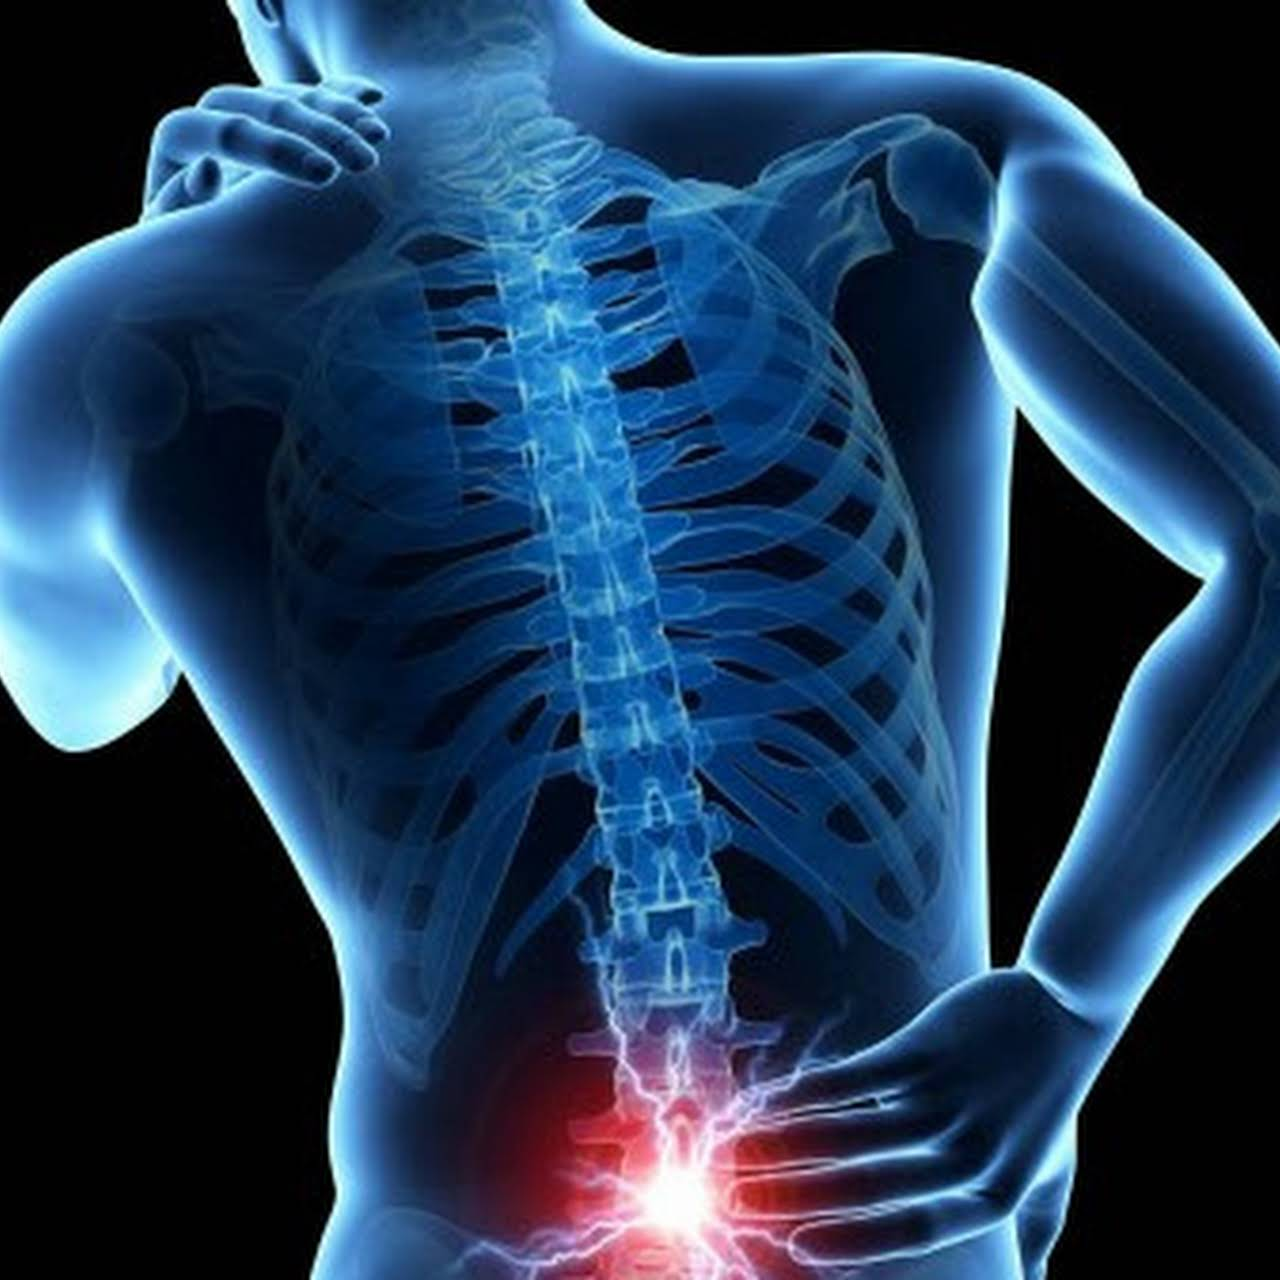 tebby chiropractic and sports medicine clinic chiropractor in